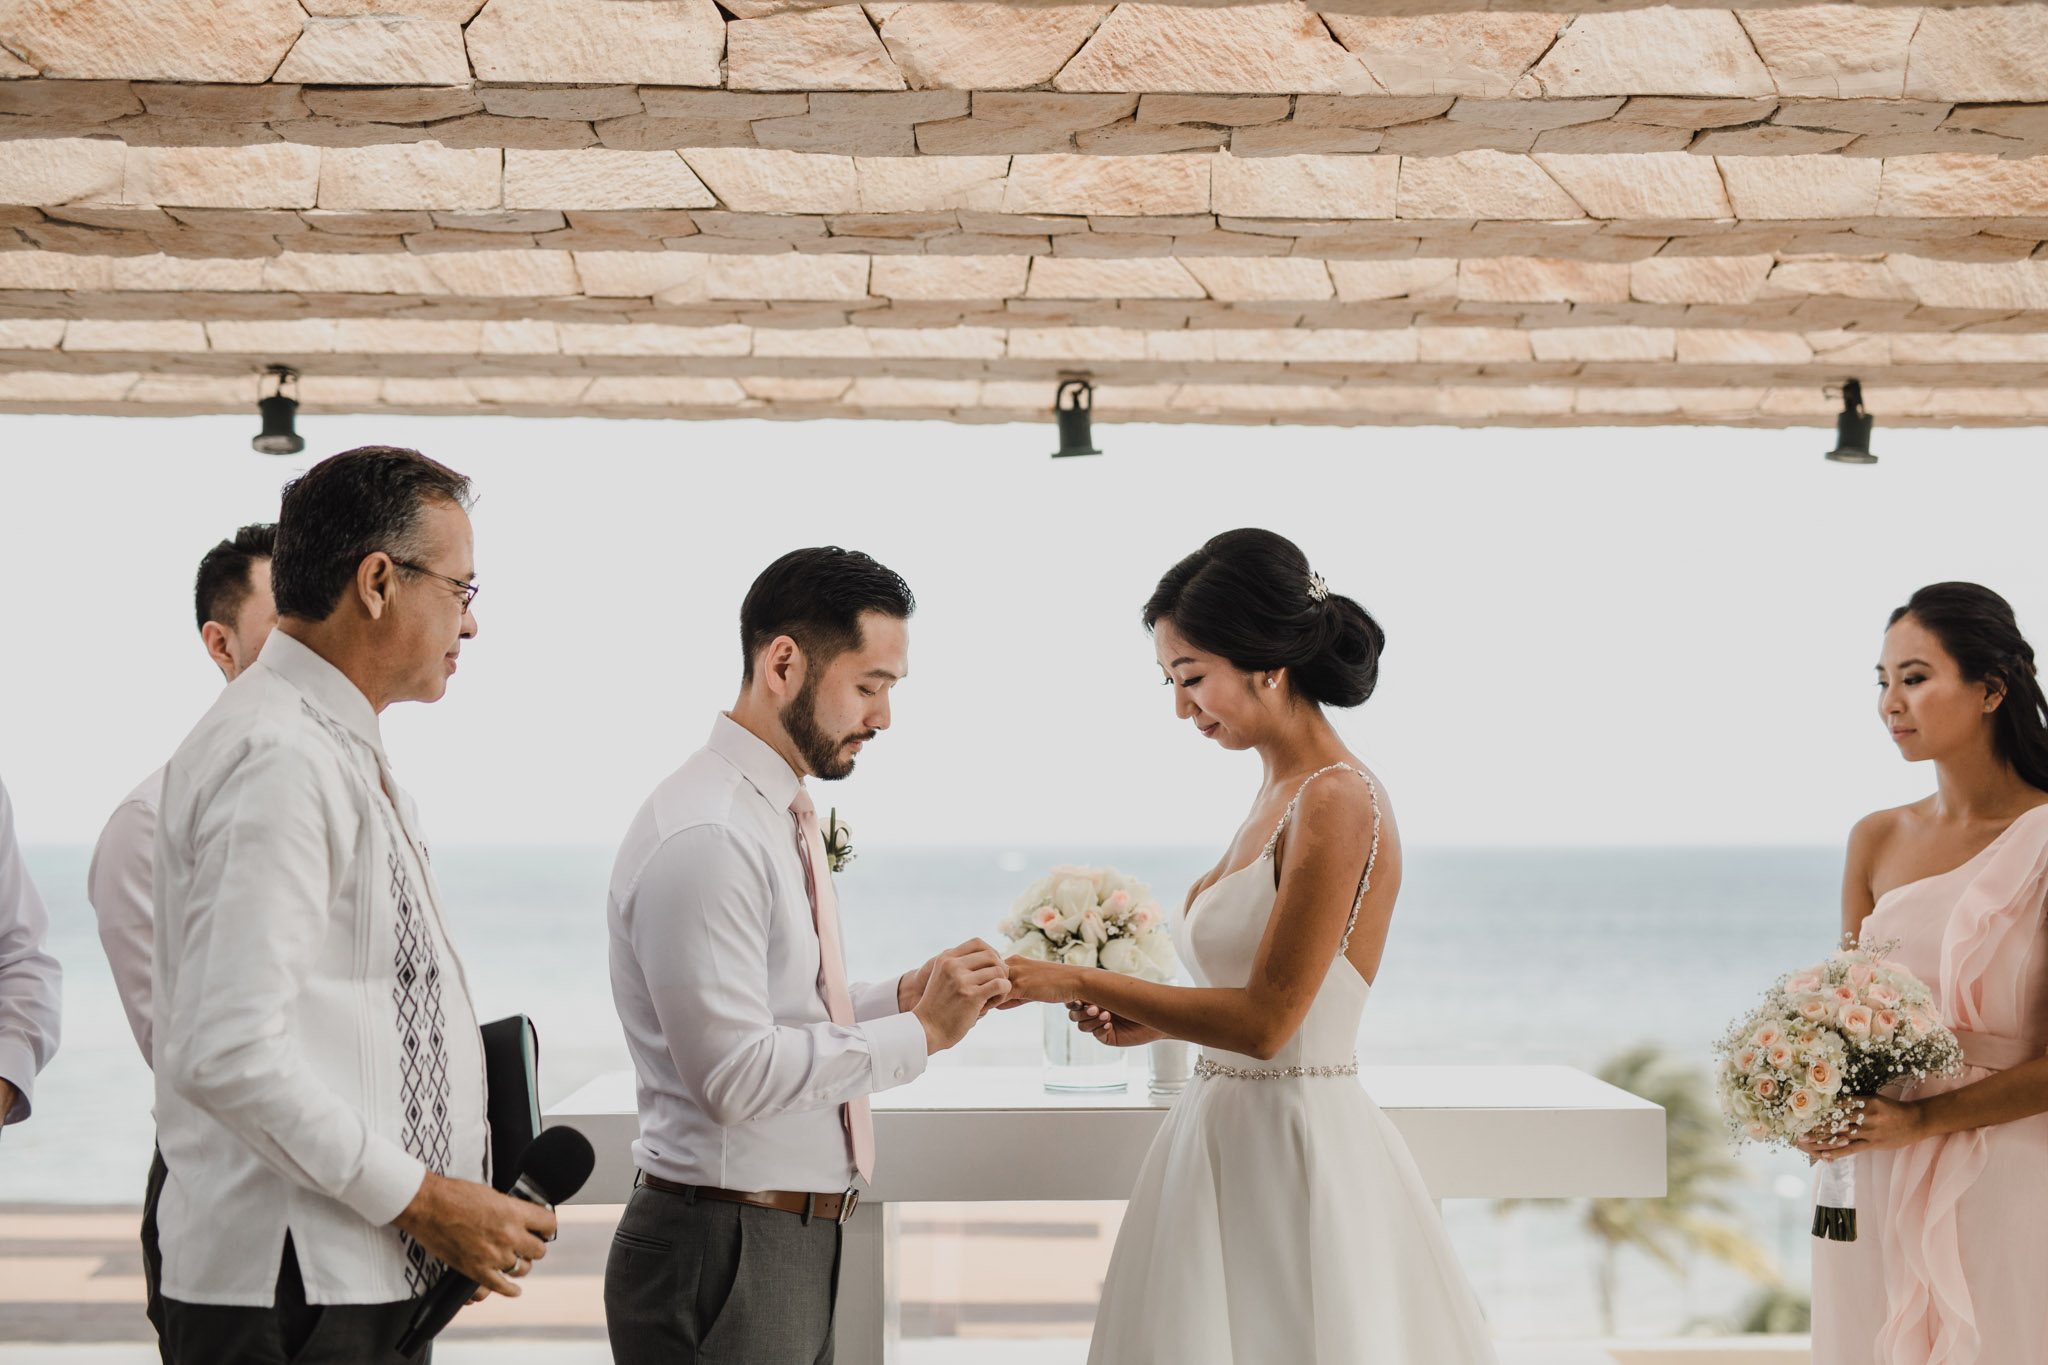 Cancun Mexico Wedding - exchanging rings